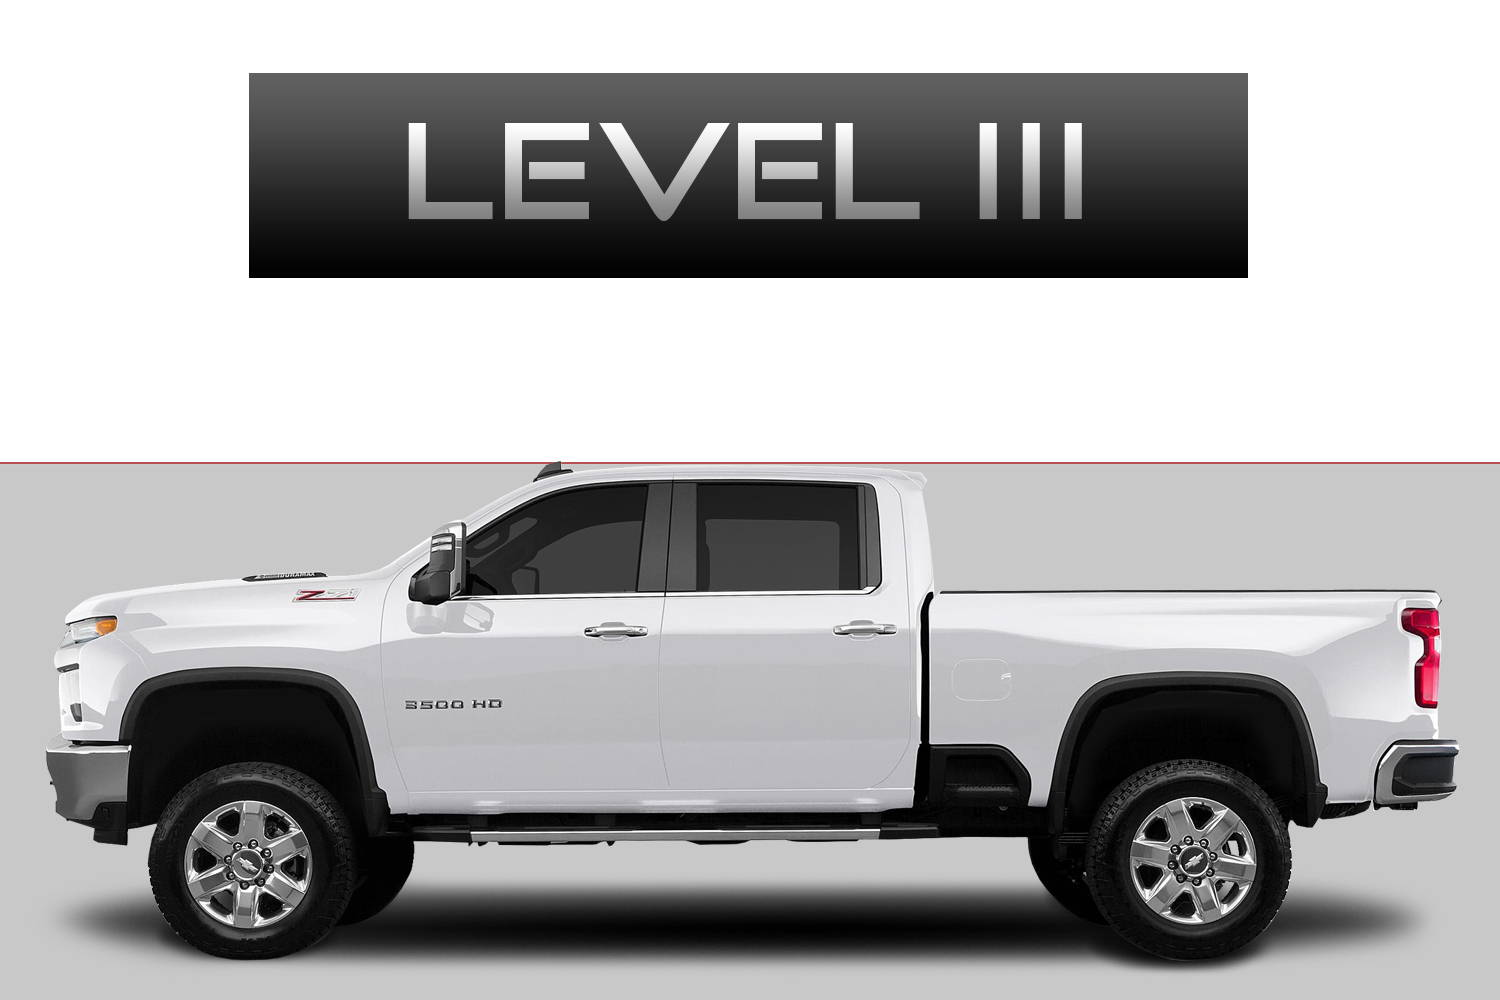 Chevrolet Silverado 2500 Off-Road Customizing Package Level 3 by 3C Trucks